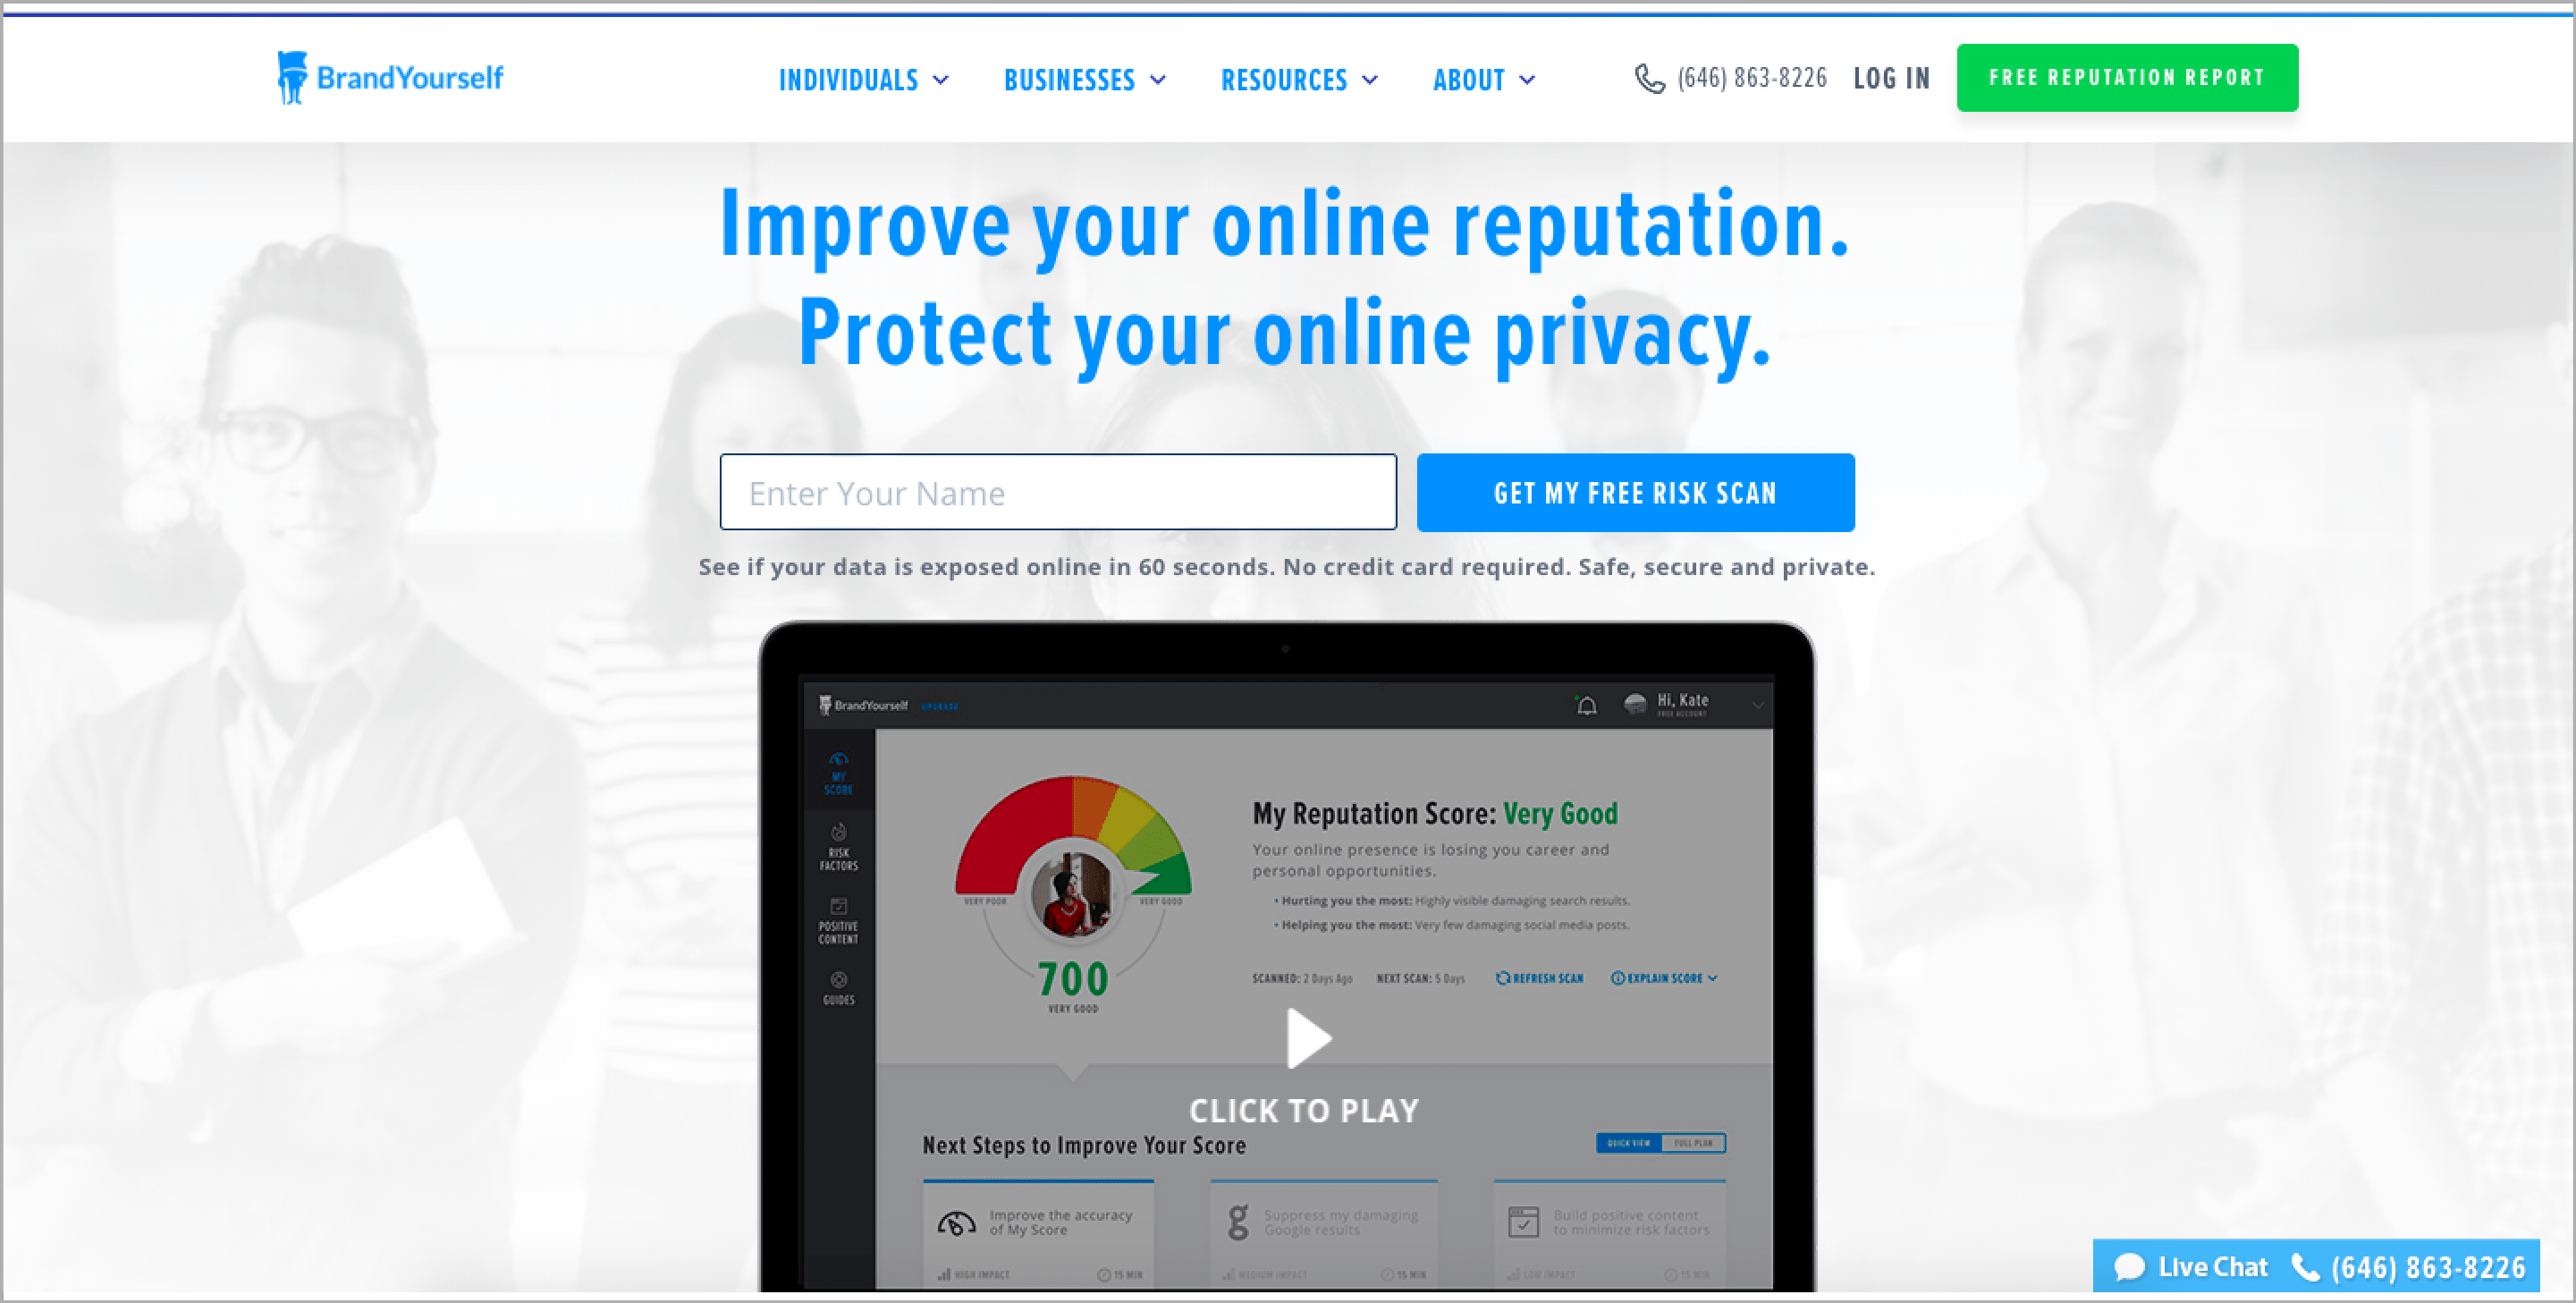 BrandYourself is a personal branding and online reputation management software that's been supporting both large and small businesses alike.